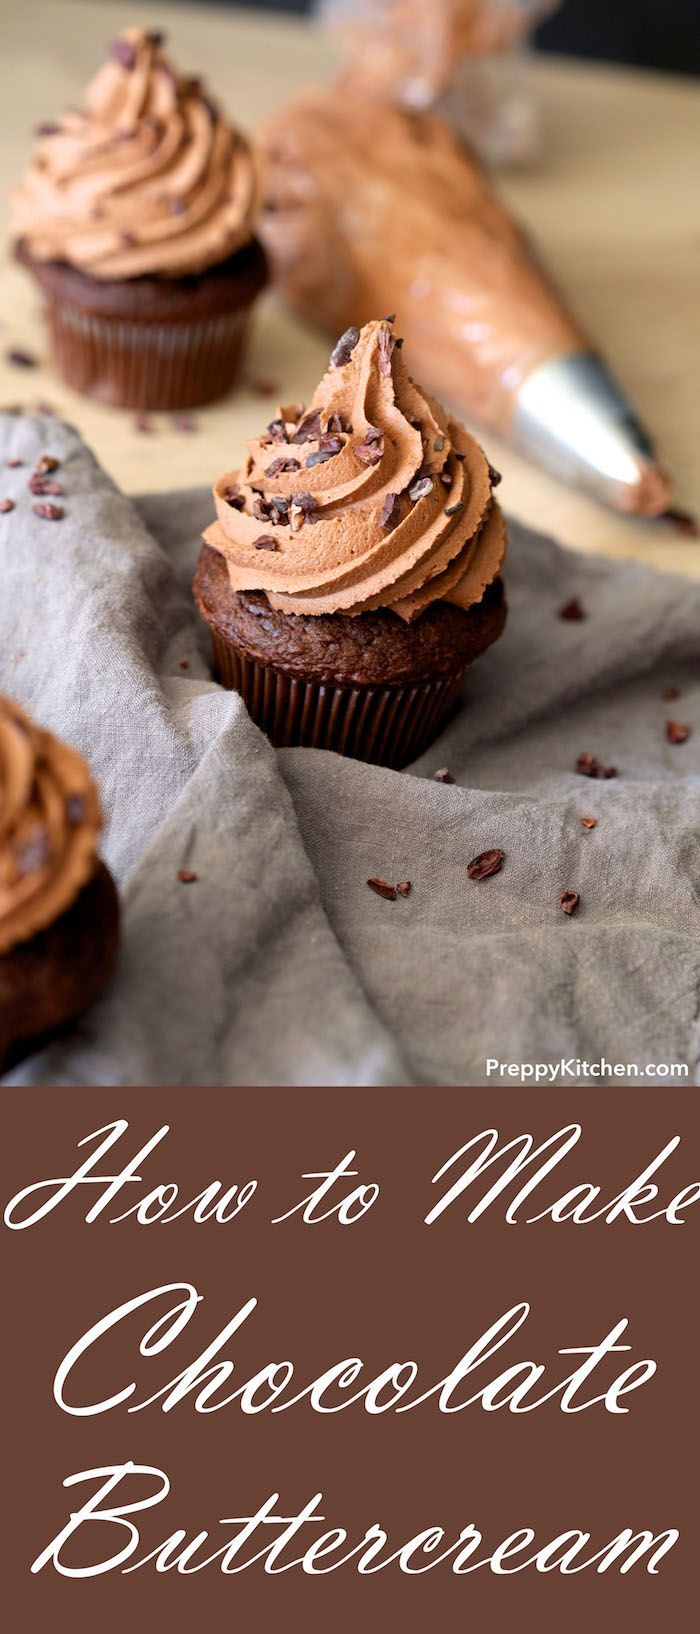 How to make Chocolate Buttercream Frosting for cupcakes, cakes, ice cream cakes and any other desserts